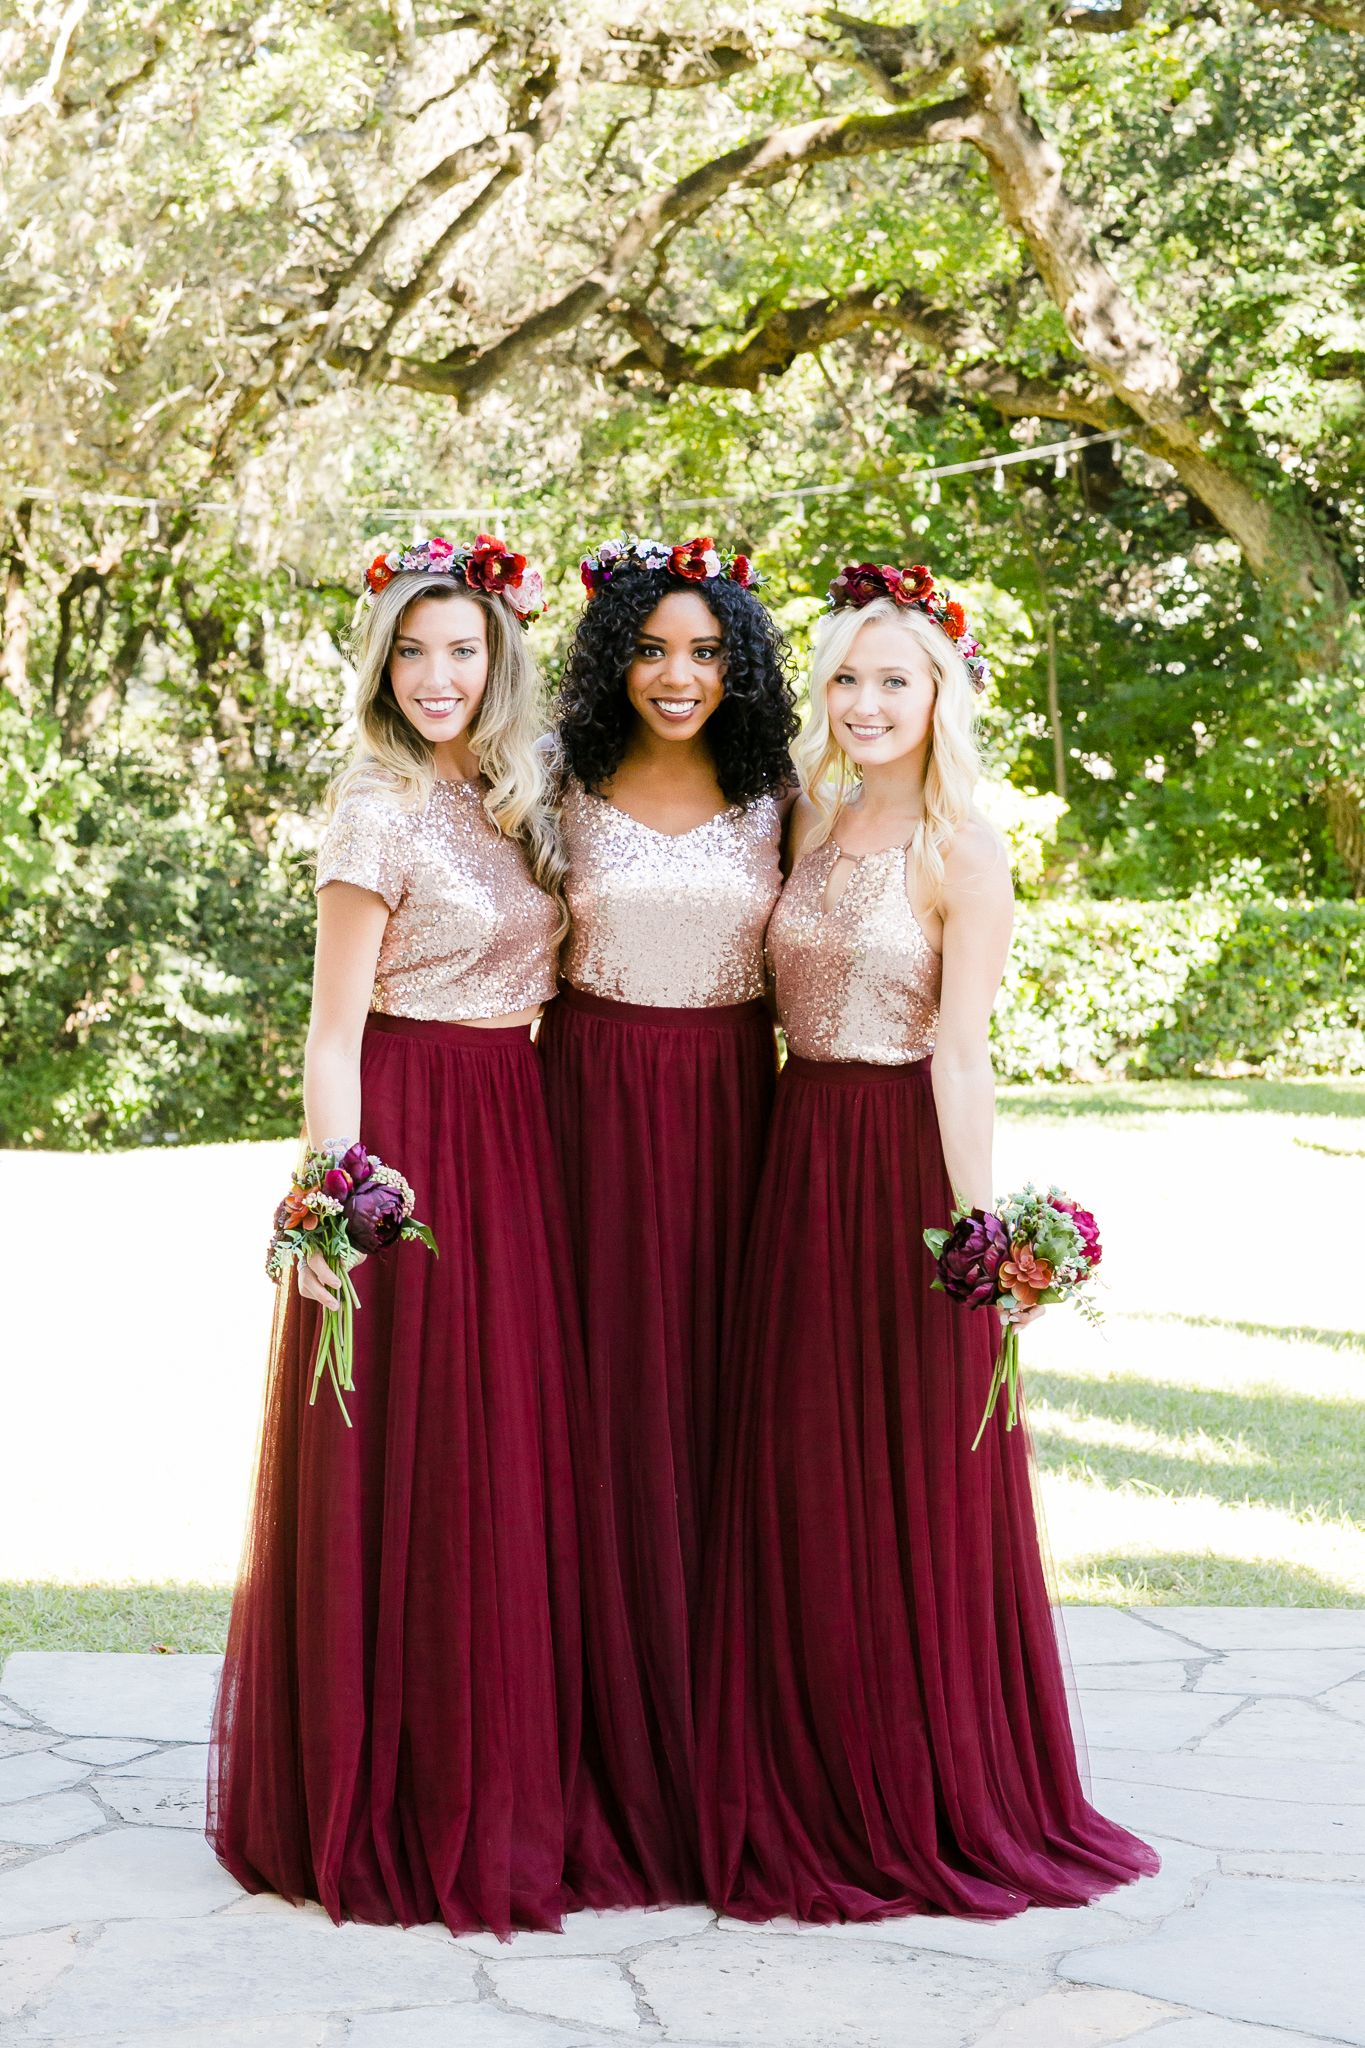 61e0eef0f63 Mix and Match Revelry Bridesmaid Dresses and Separates.Revelry has a wide  selection of unique bridesmaids dresses including tulle skirts